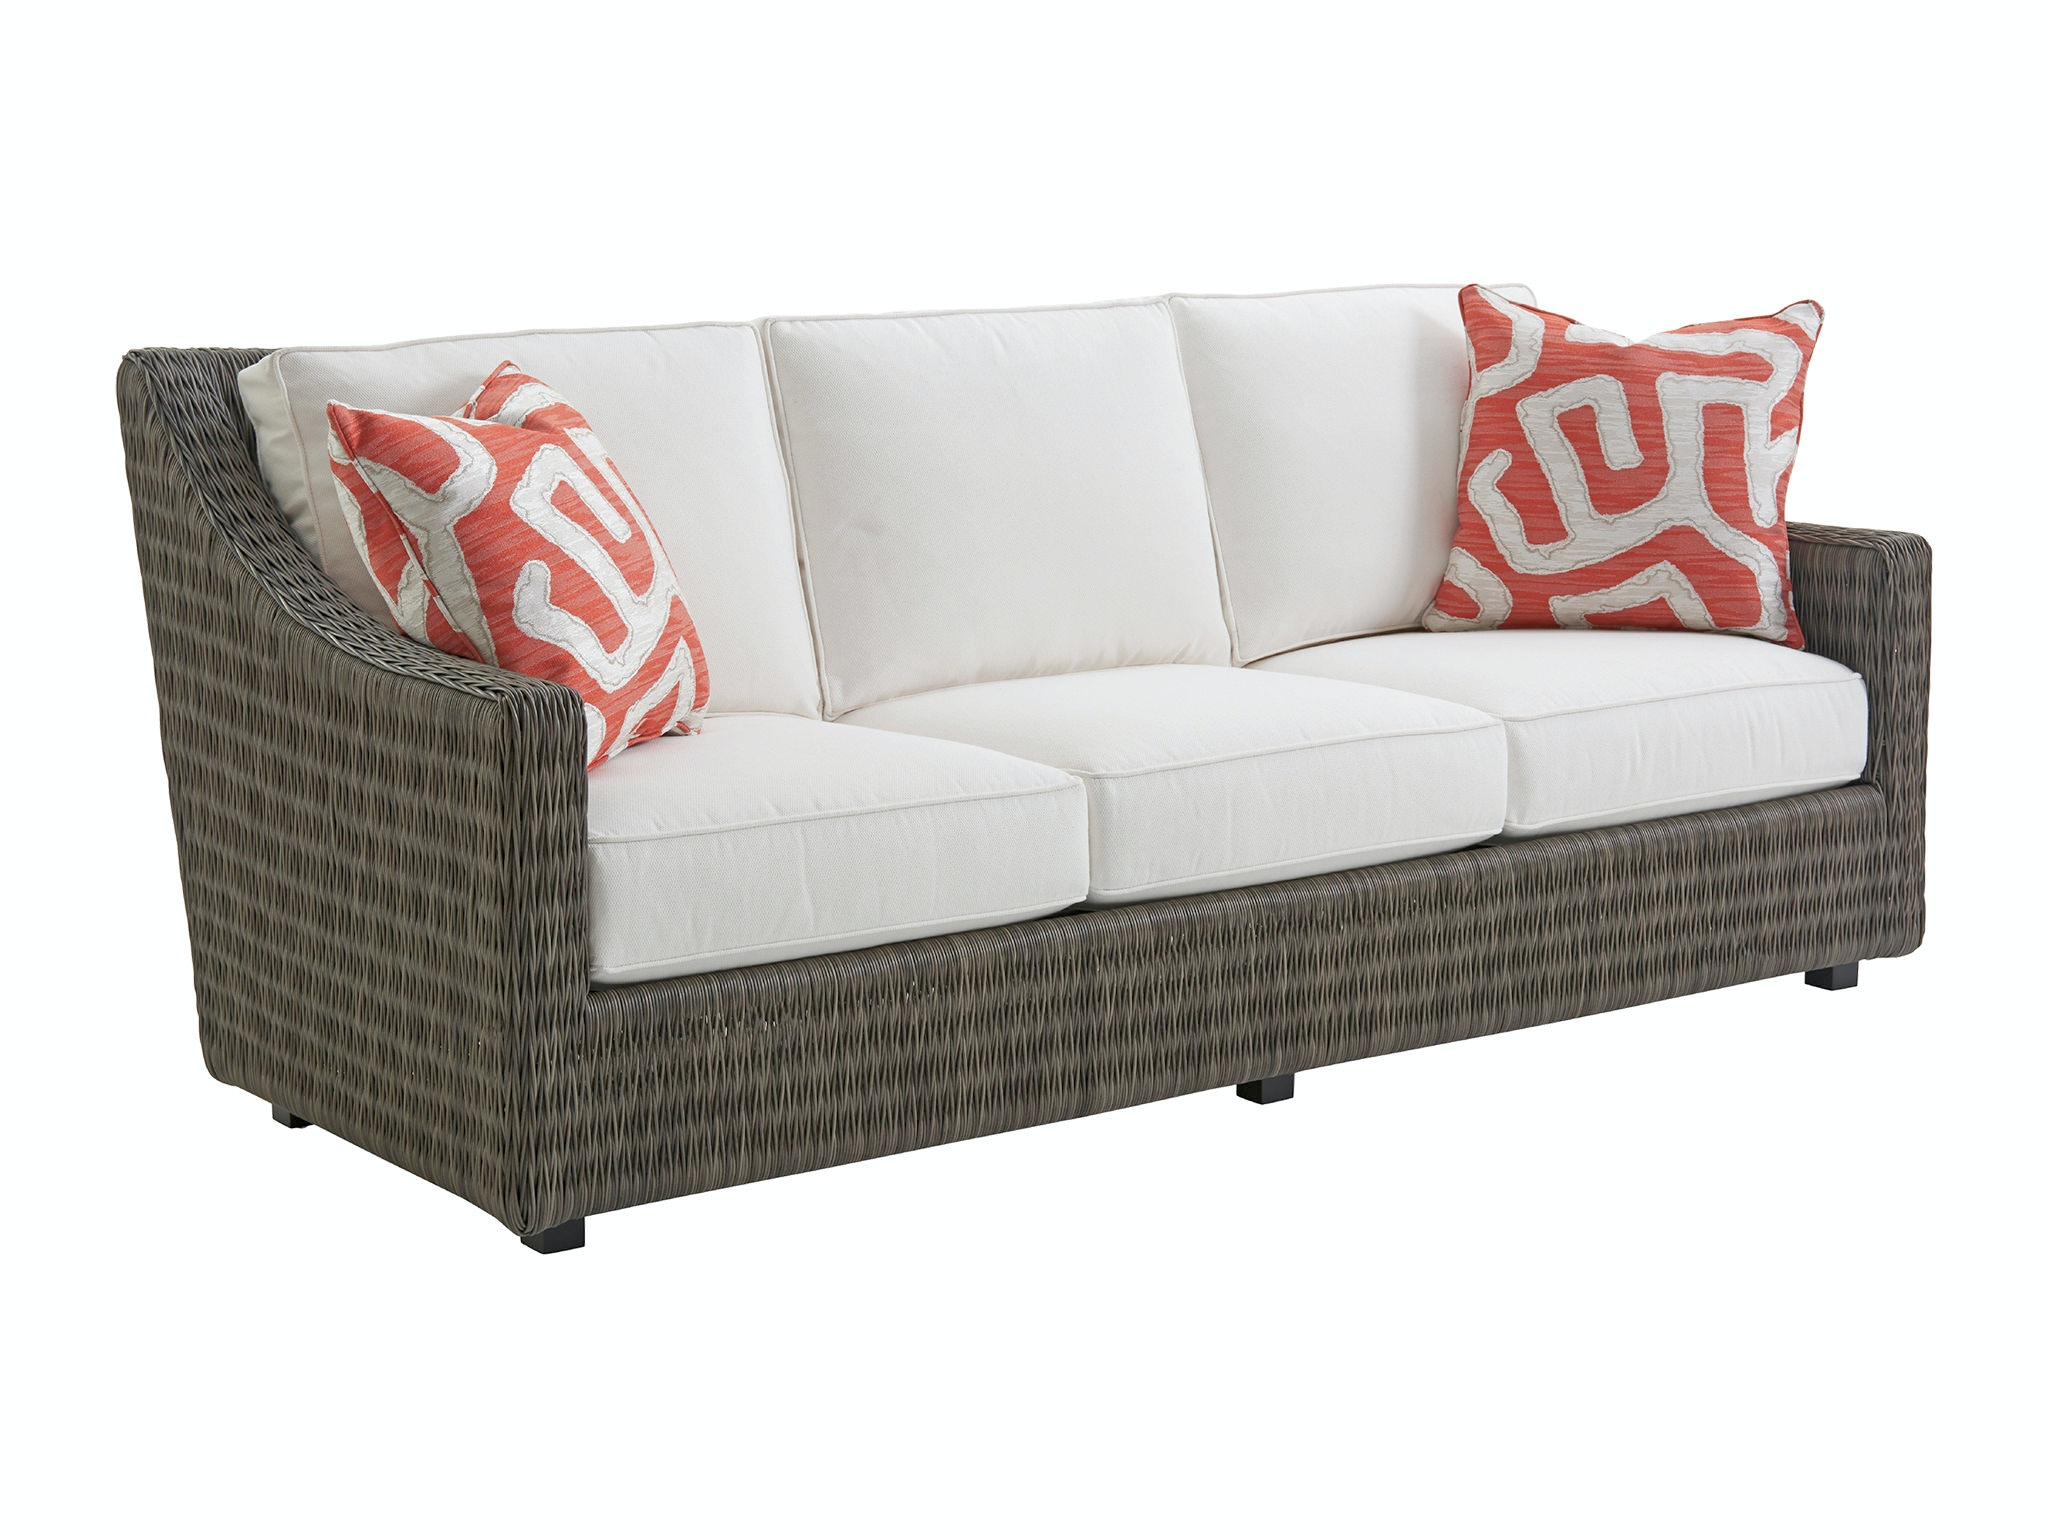 Tommy Bahama Outdoor Living Short Sofa 3900 31